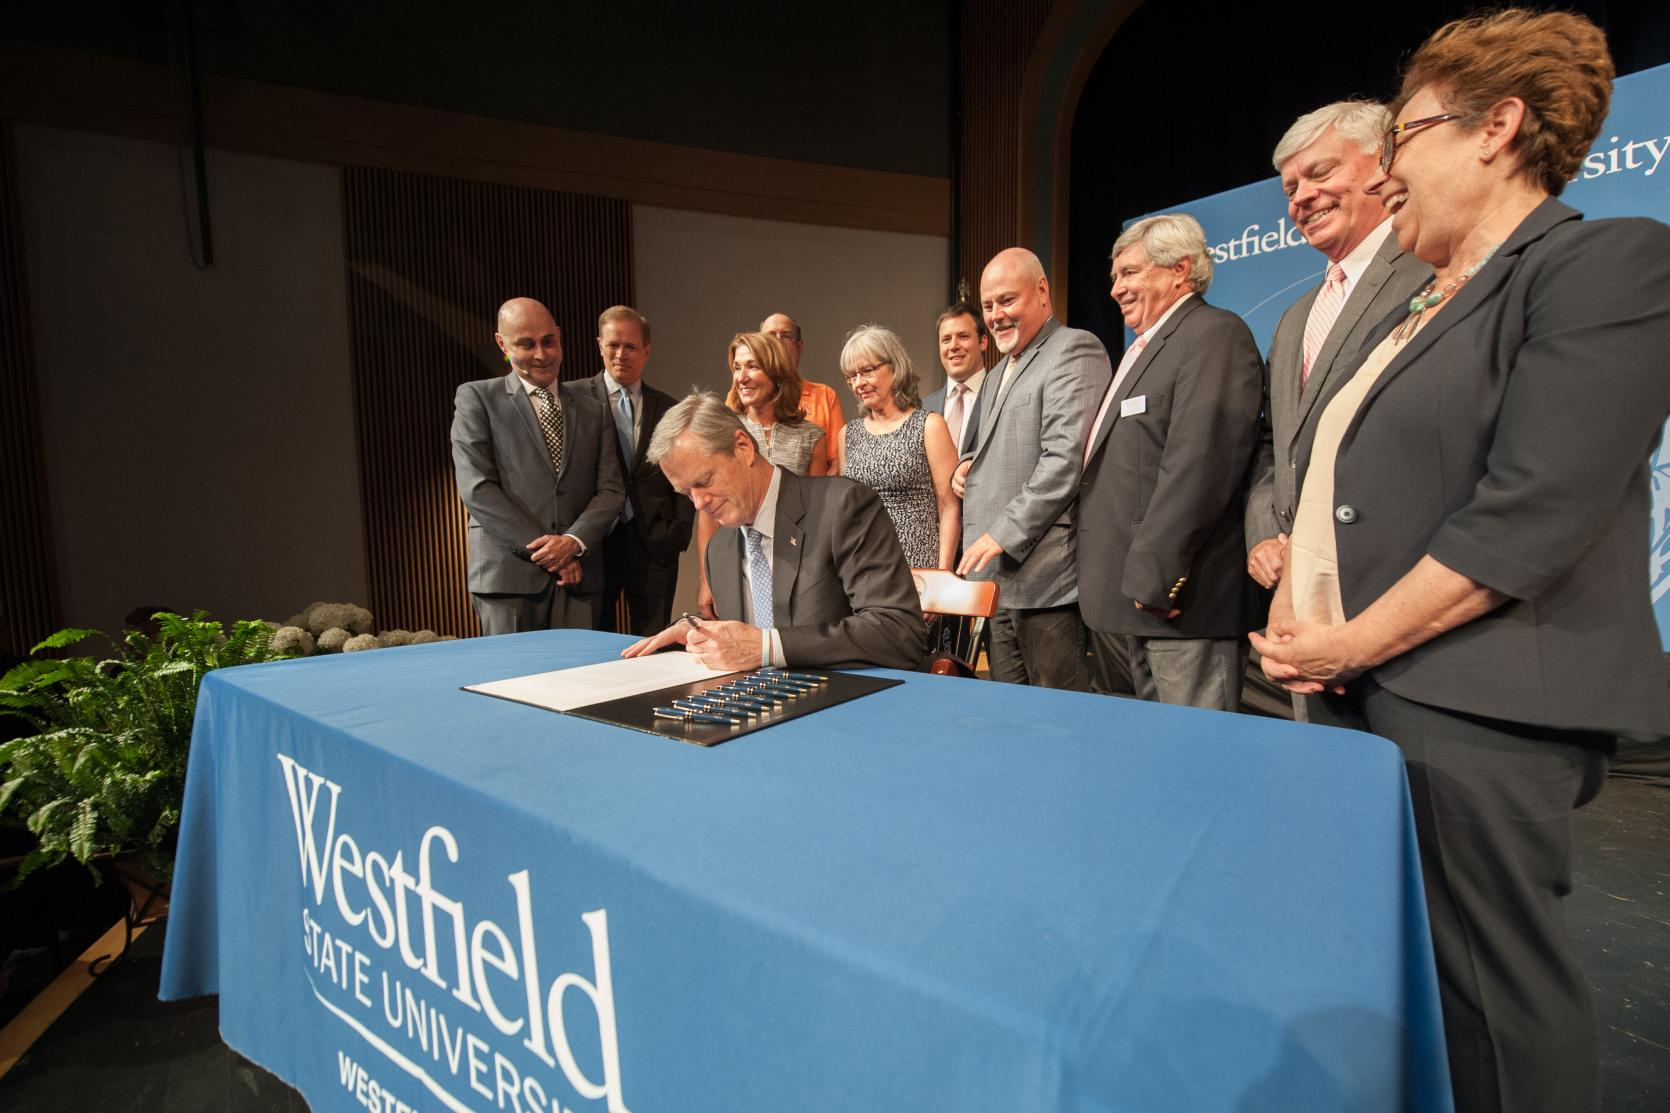 Governor Baker visits Westfield State University for a ceremonial bill signing for H.4549- An Act for capital repairs and improvements for the Commonwealth which includes about $20 millon for the renovation of Parenzo Hall on campus.